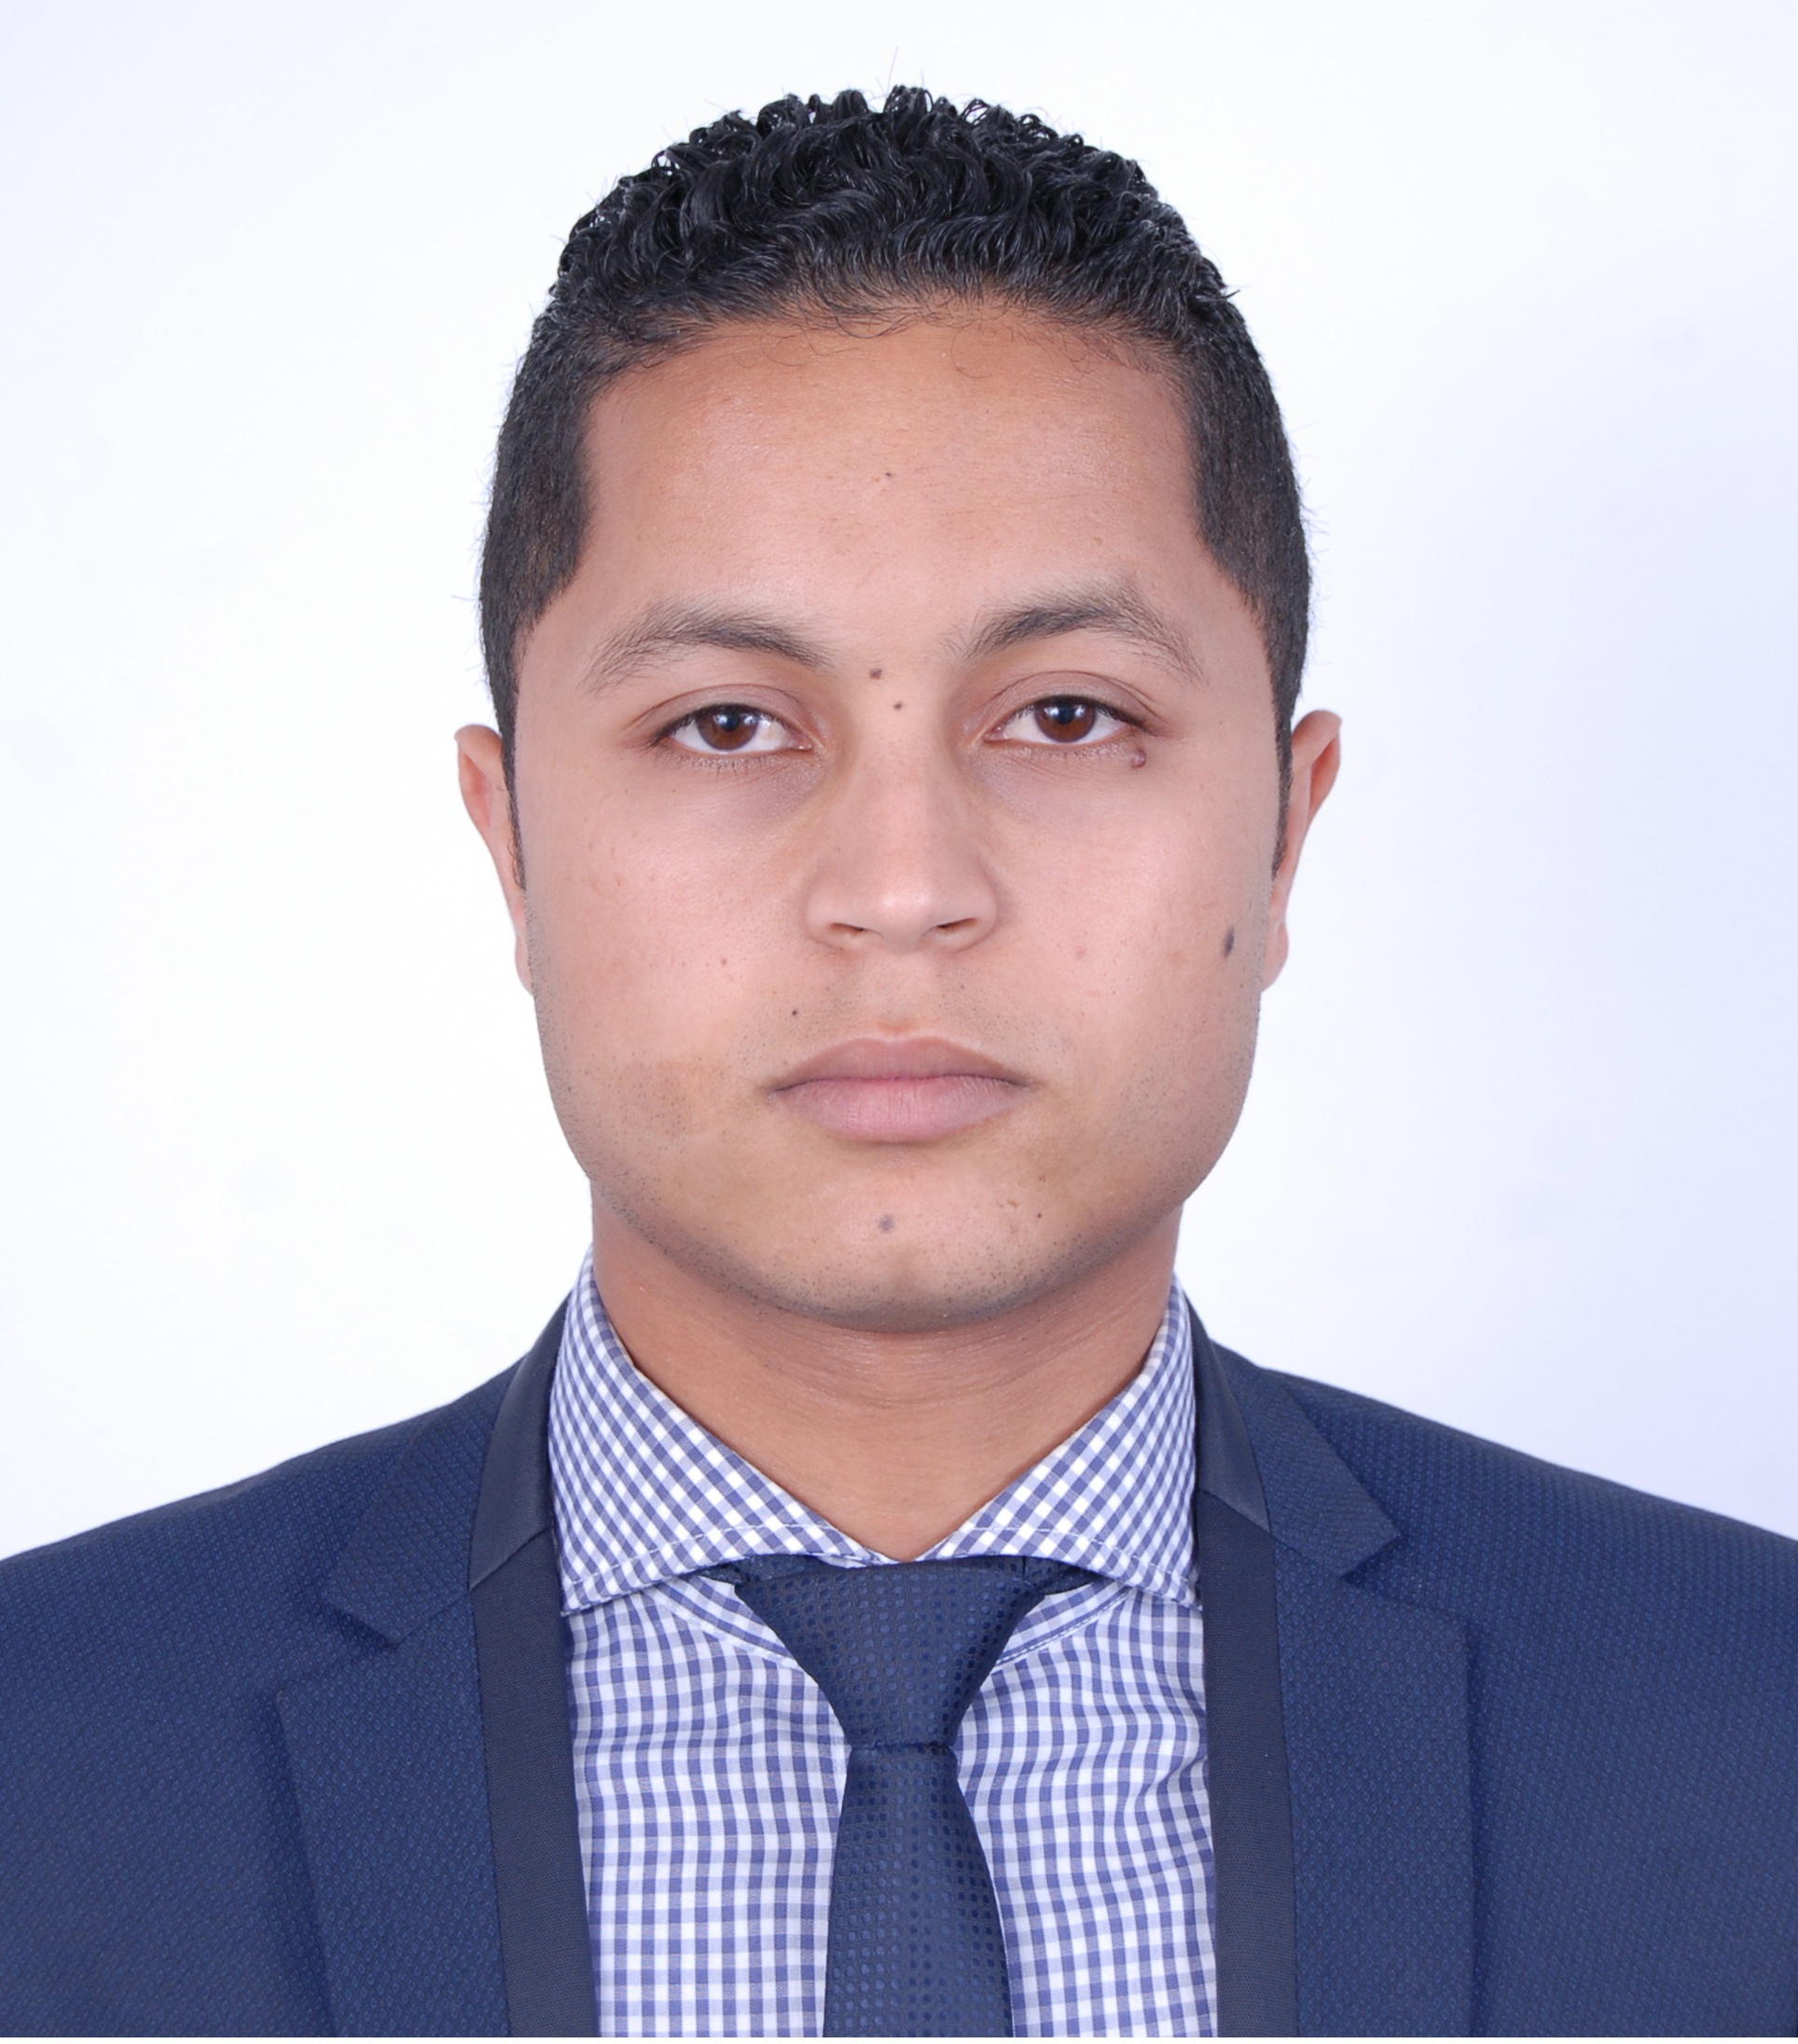 cv web de mohamed agdid - auditeur junior